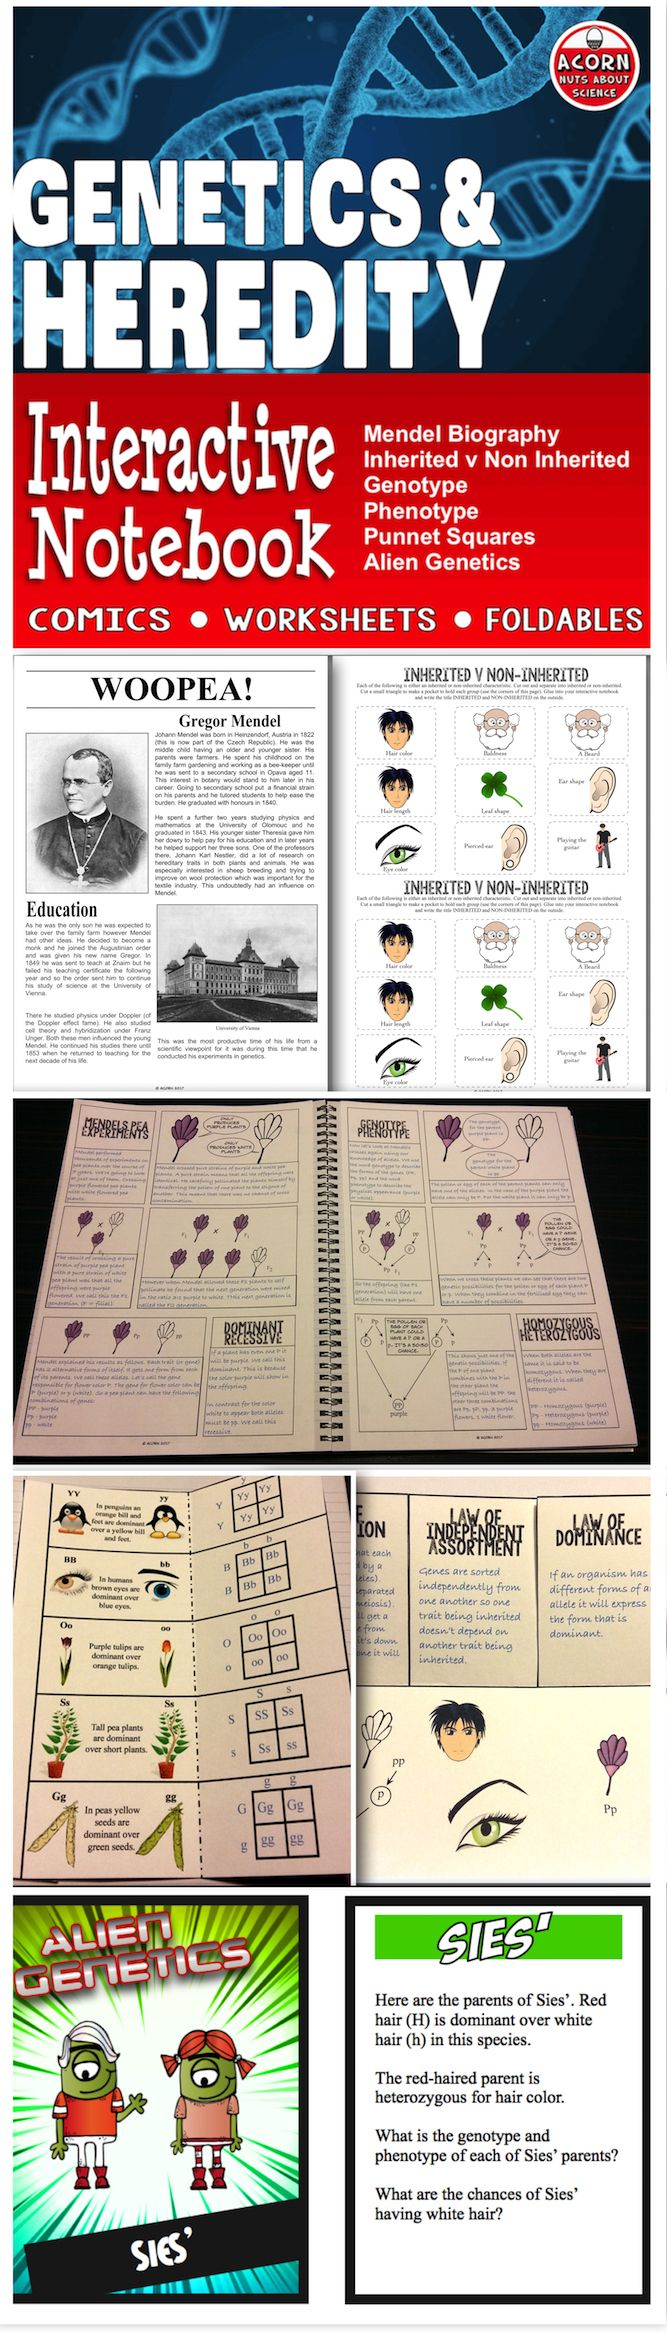 308 best heredity images on Pinterest | Life science, Science ...